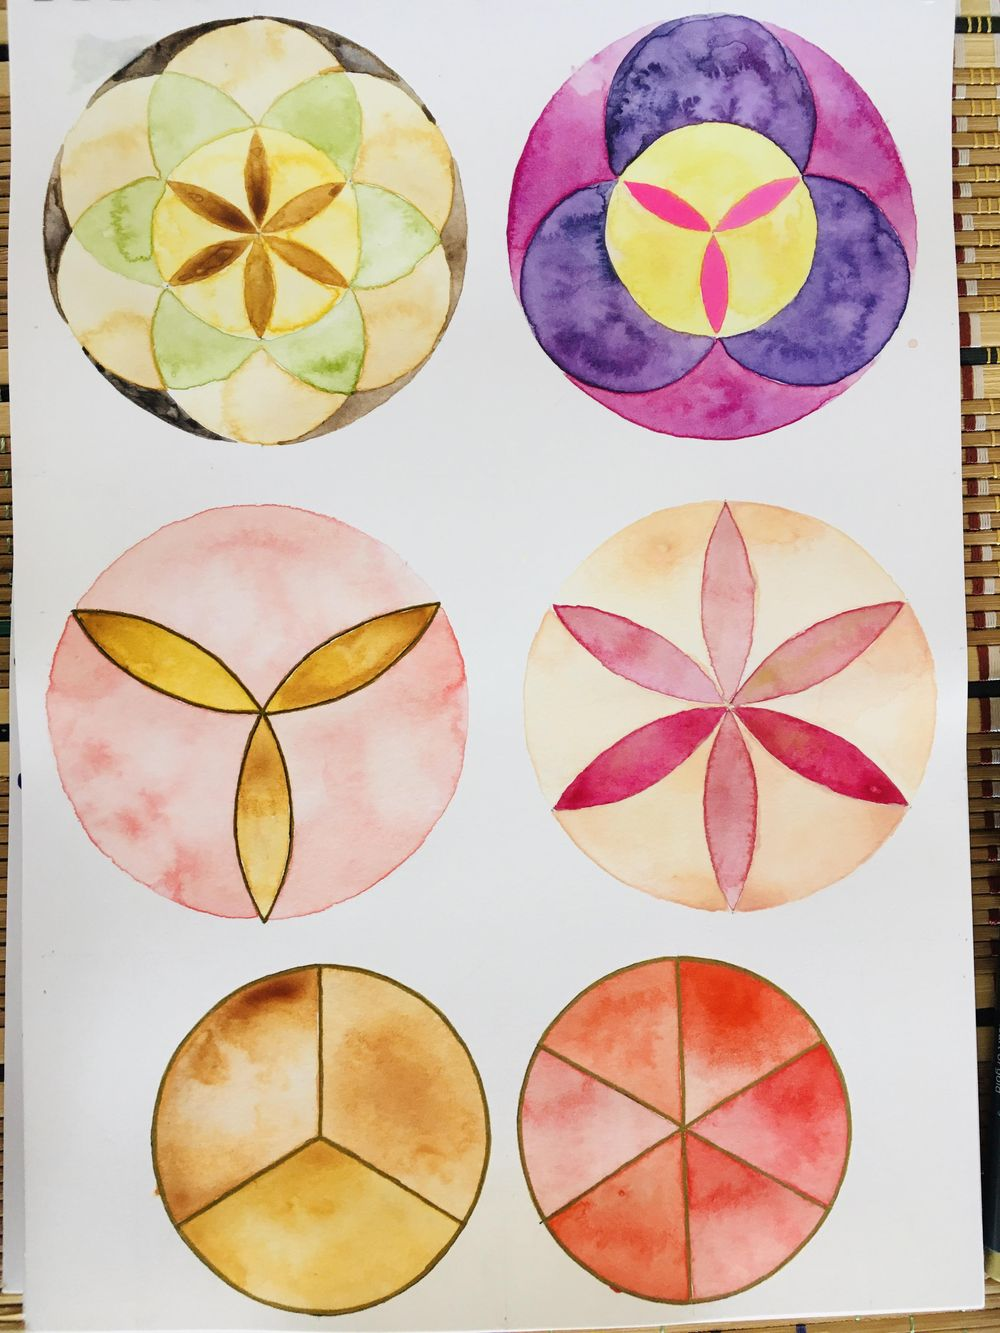 Geometry & watercolour - image 1 - student project